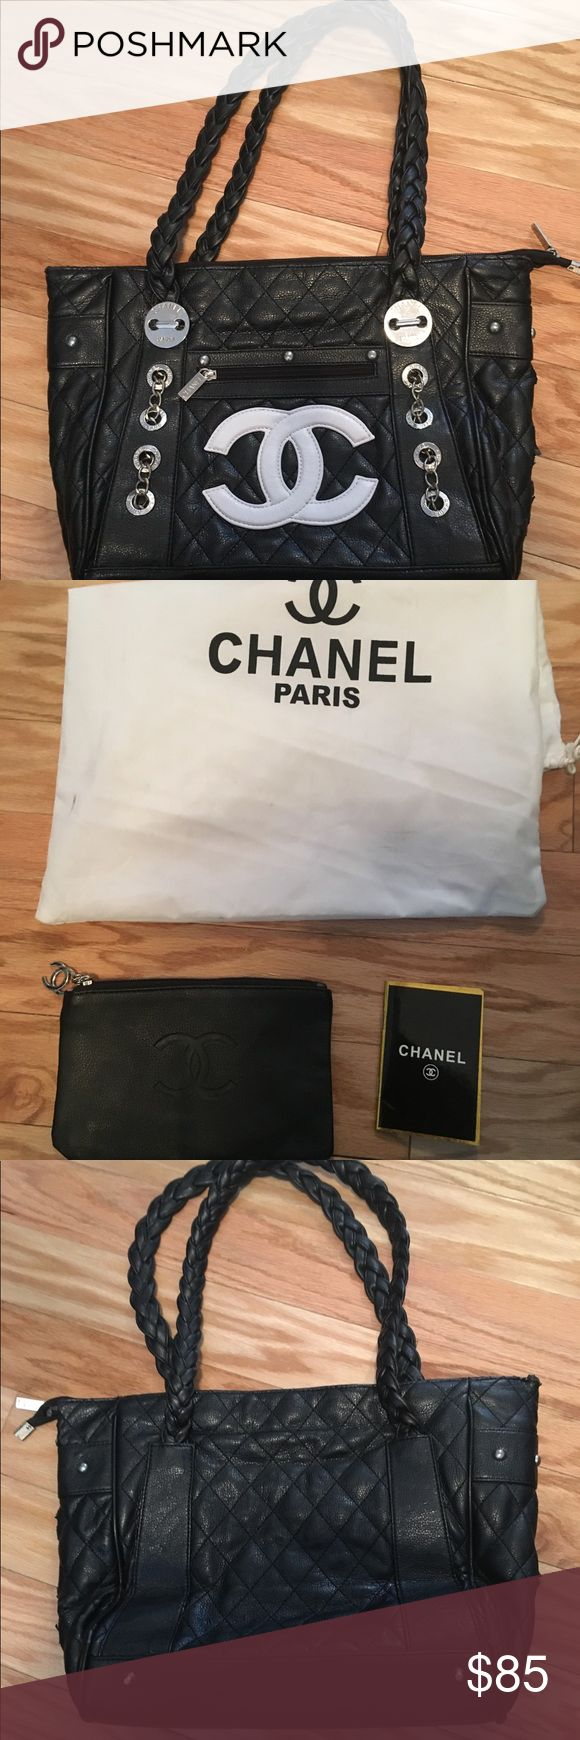 Chanel handbag Excellent quality replica handbag. Used minimally. Comes with zippered pouch and dust bag. Please message me for any info you need! :) Bags Shoulder Bags #Replicahandbags